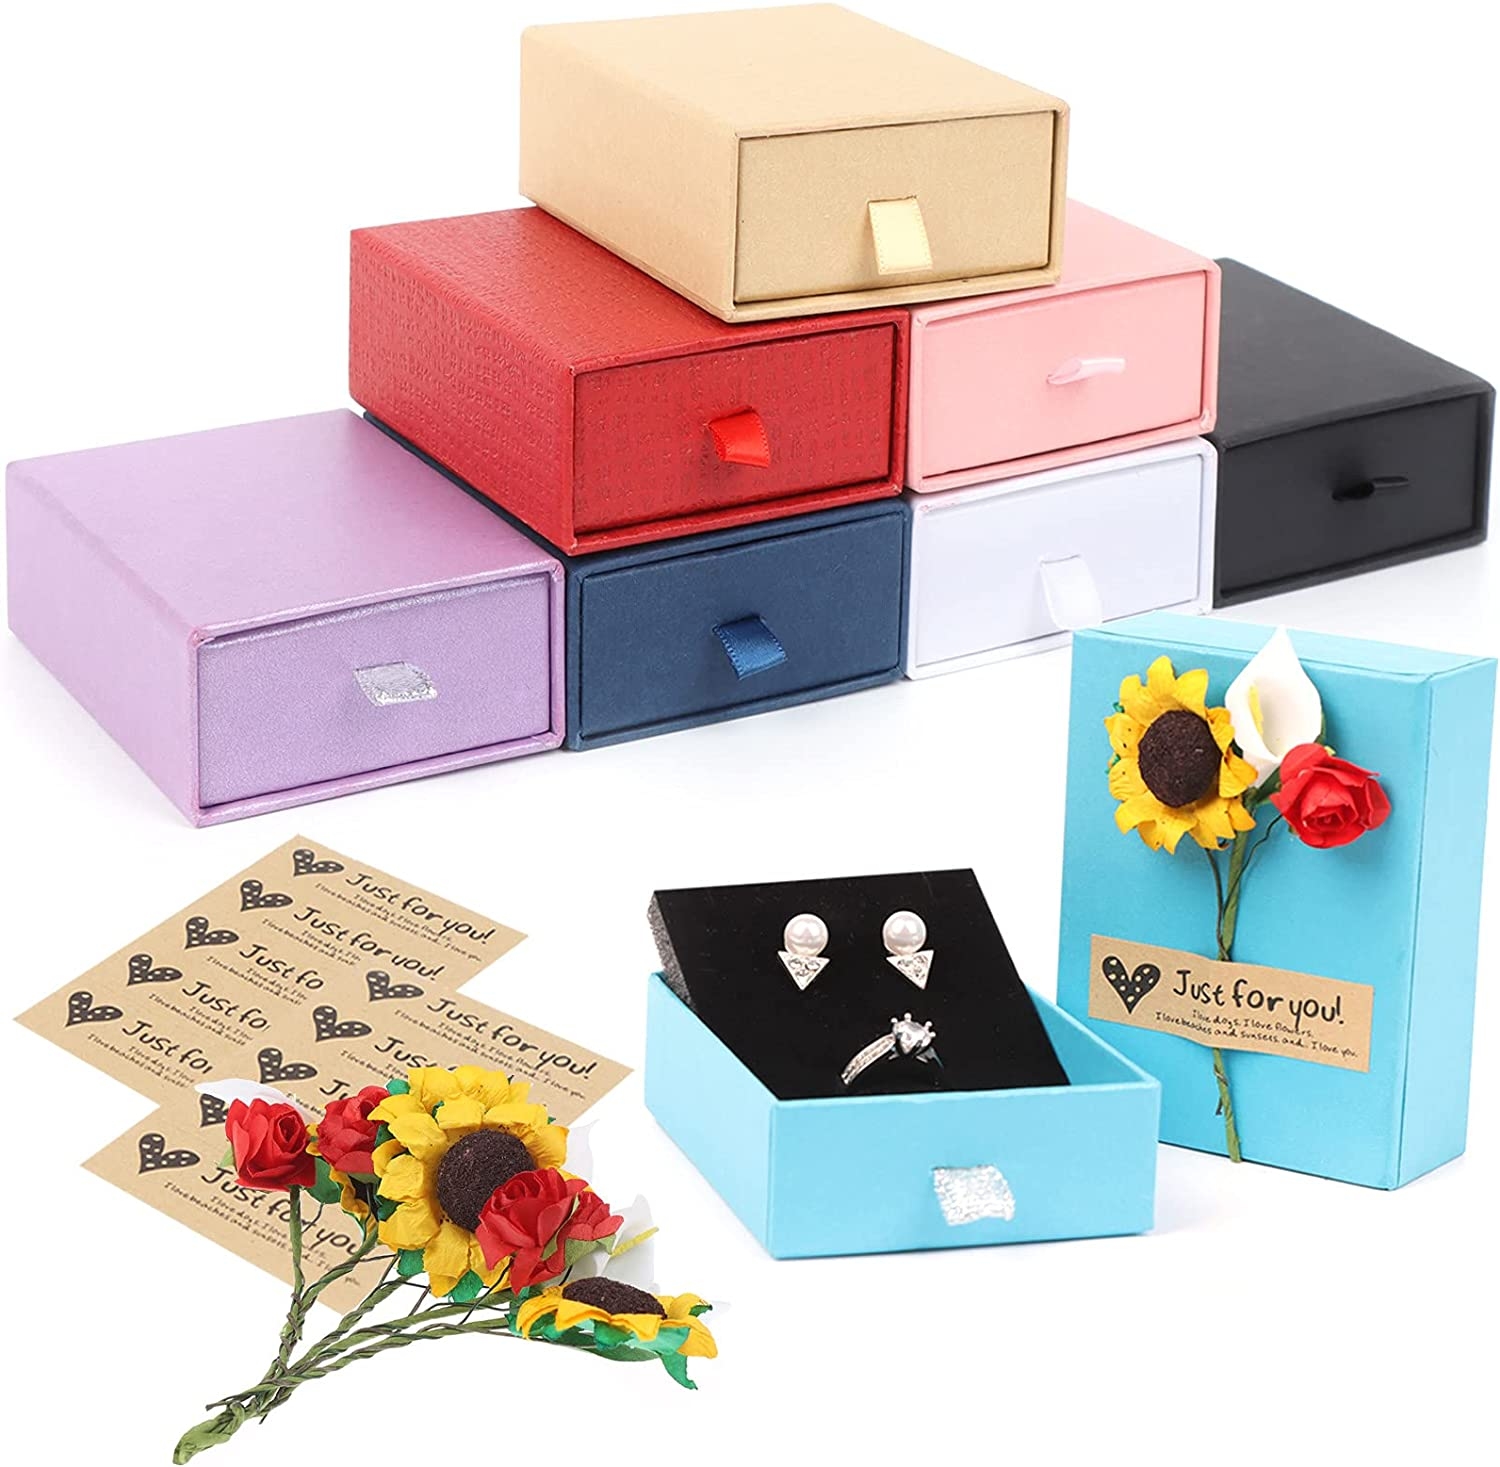 8 Pieces Jewelry Gift Max 69% OFF Boxes with 10 and Colo Stickers 24 Flowers Sales of SALE items from new works